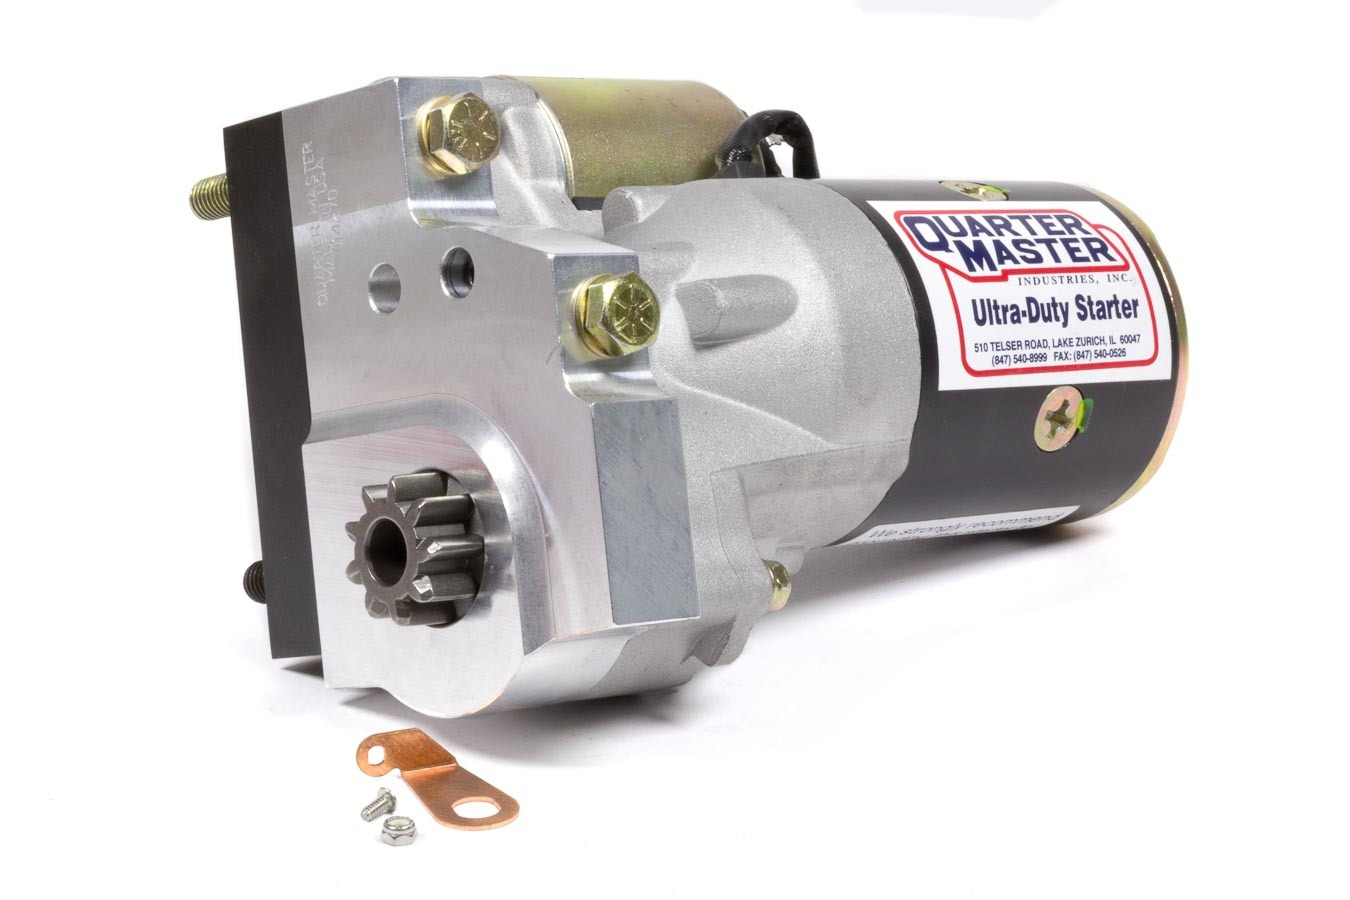 Quarter Master 114270C Starter, Ultra-Duty, Gear Reduction, Block Mount, Standard Rotation, 105 Tooth Low Ground Clearance Flywheels, Each